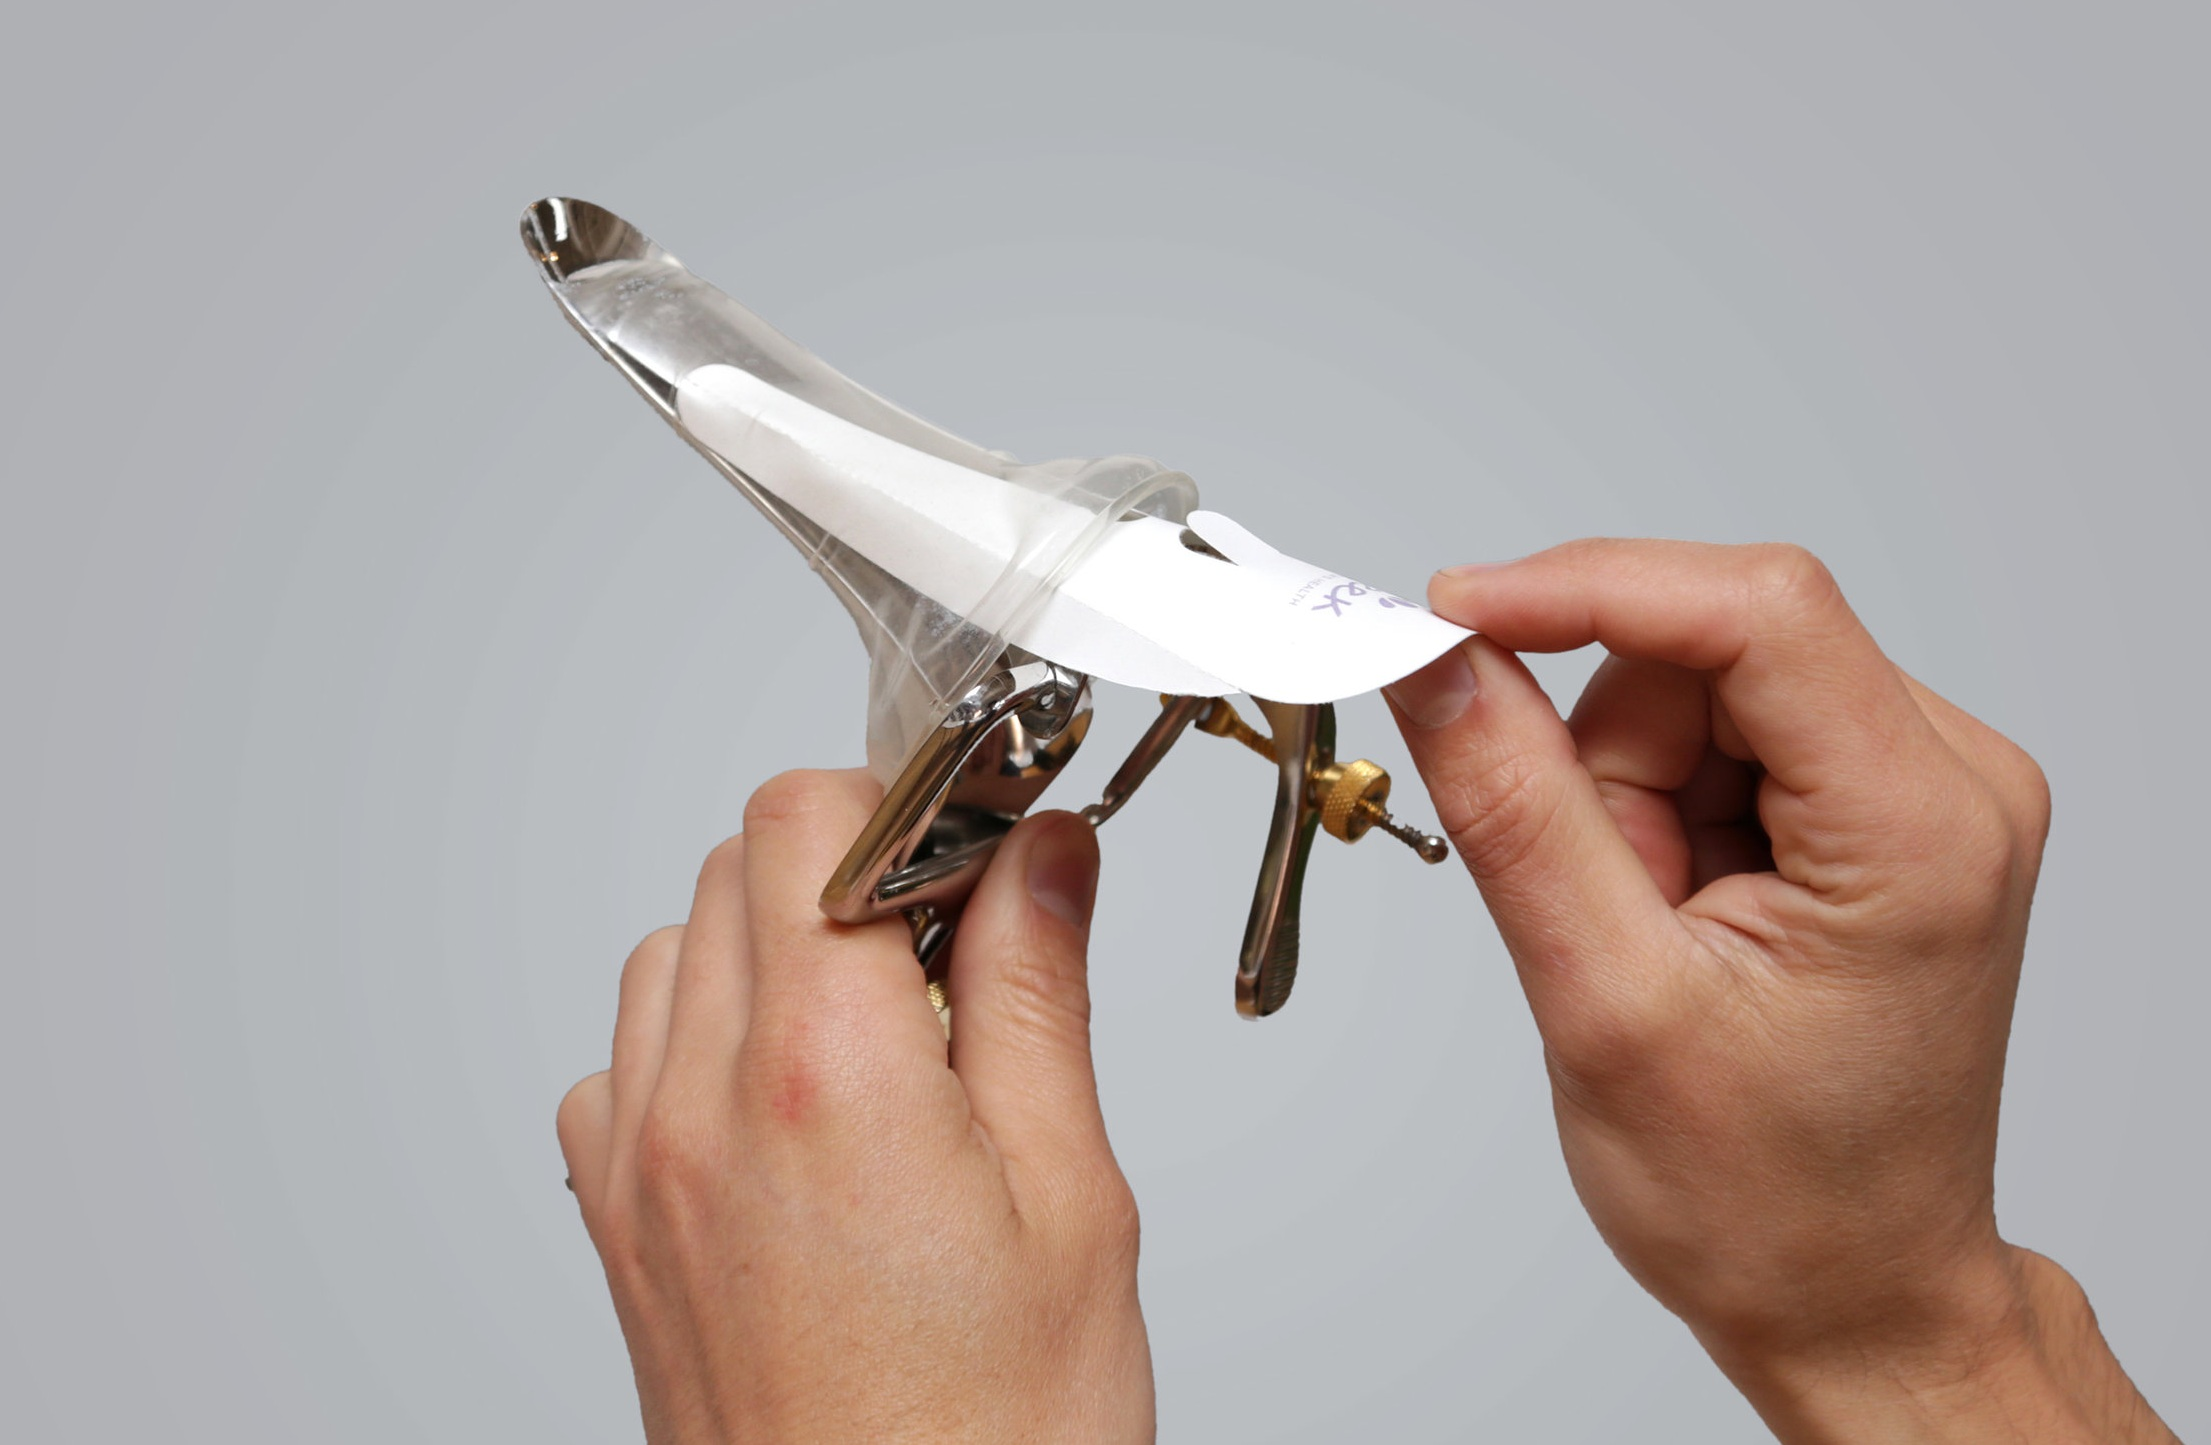 Paper applicator ensures quick and easy placement on speculum.